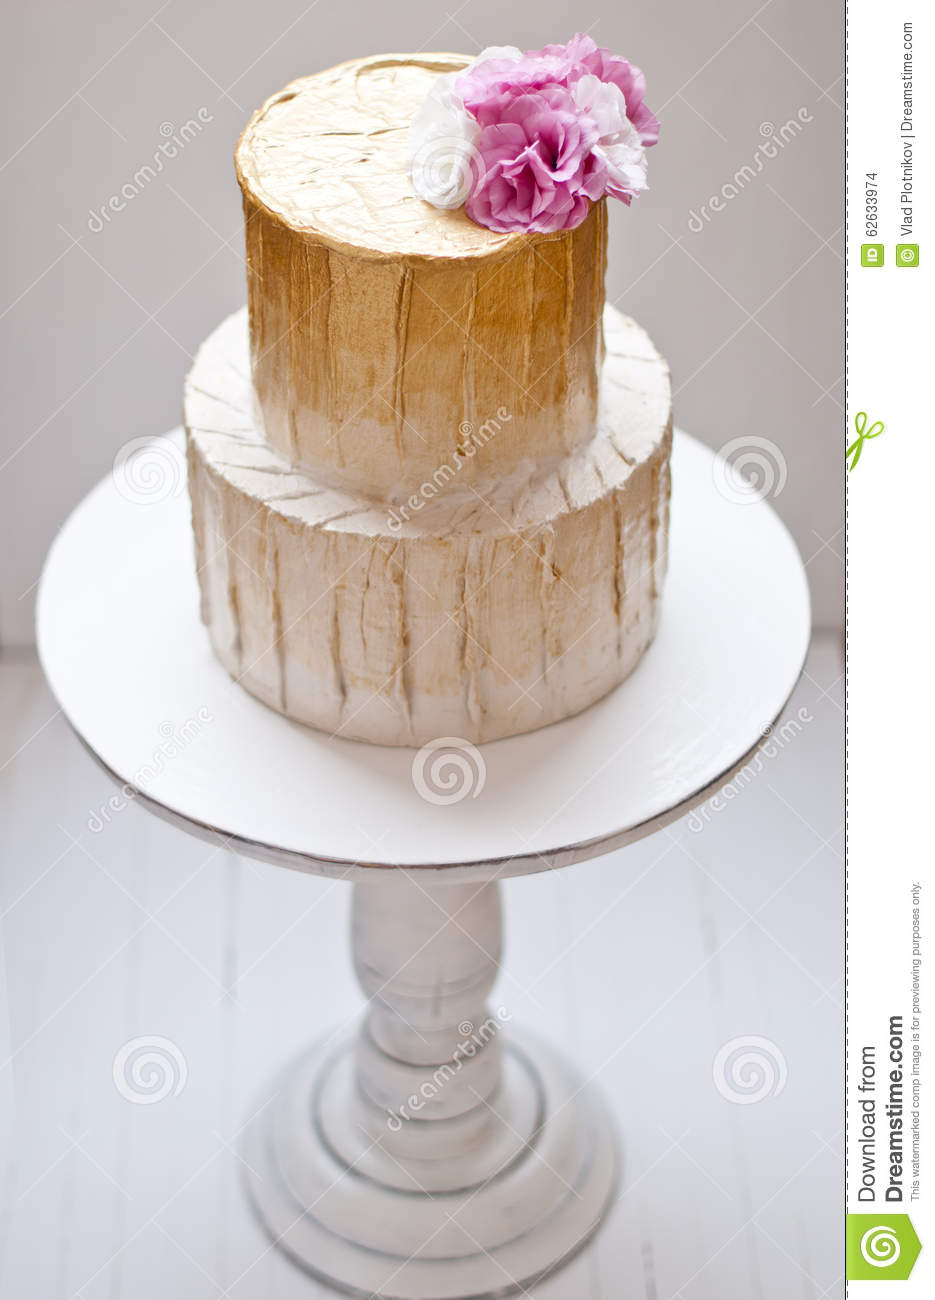 Gold And White Wedding Cake Stock Photo Image Of Cater Catering